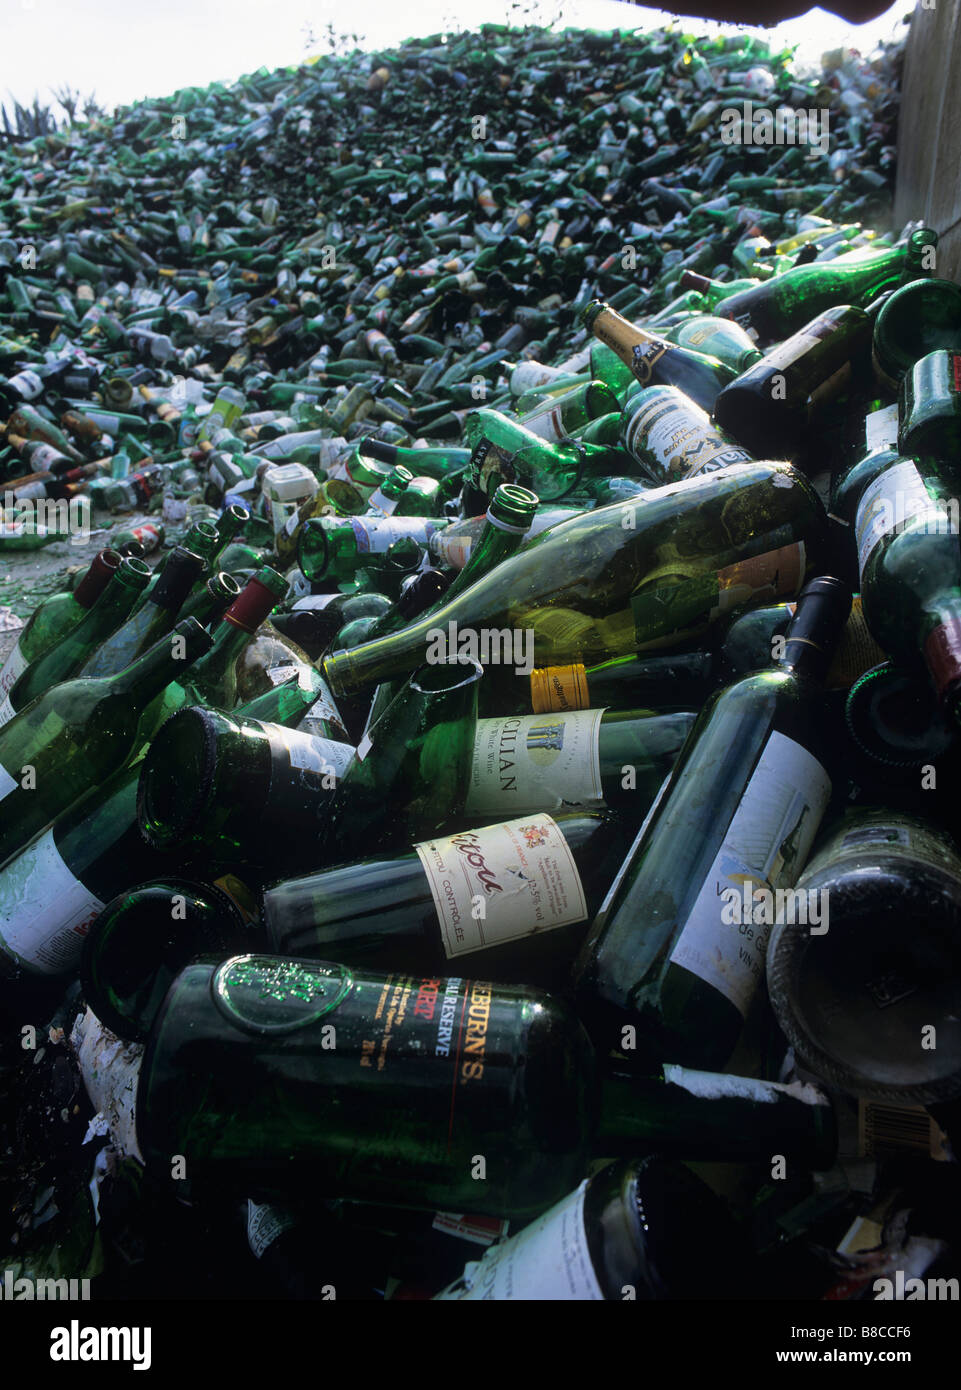 Bottles for recycling - Stock Image